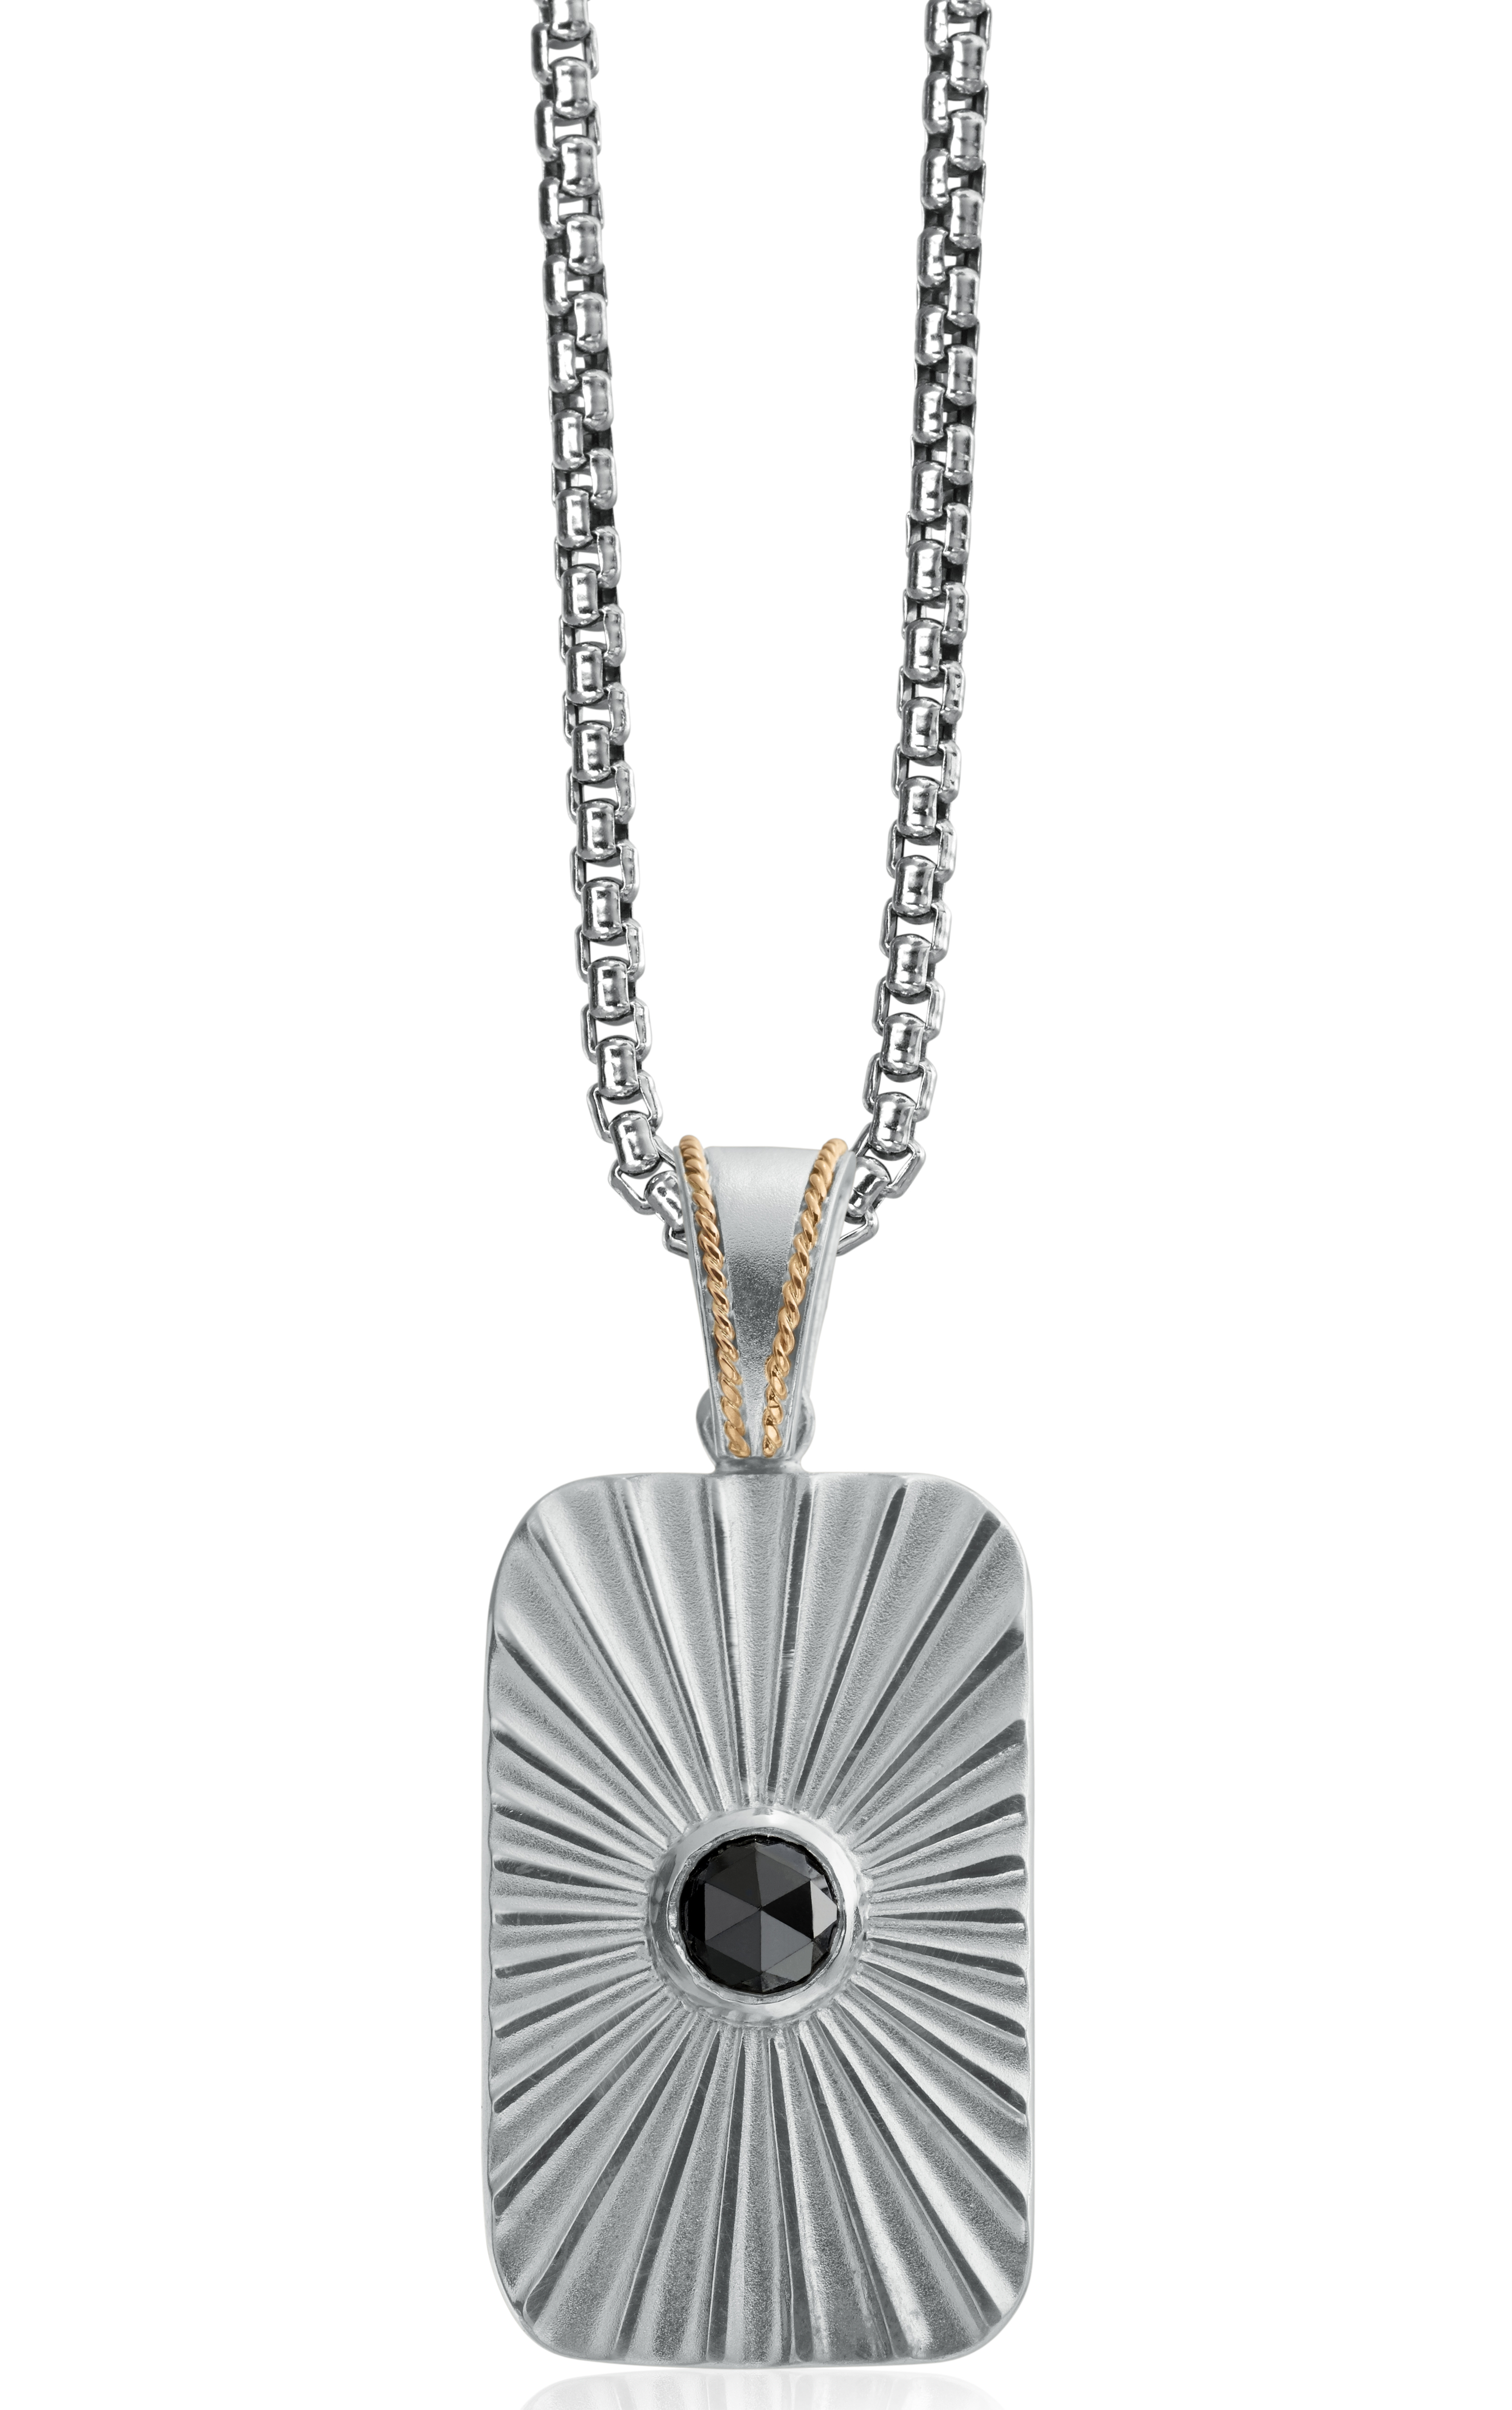 Daniel Bass rose-cut black diamond dog tag | JCK On Your Market